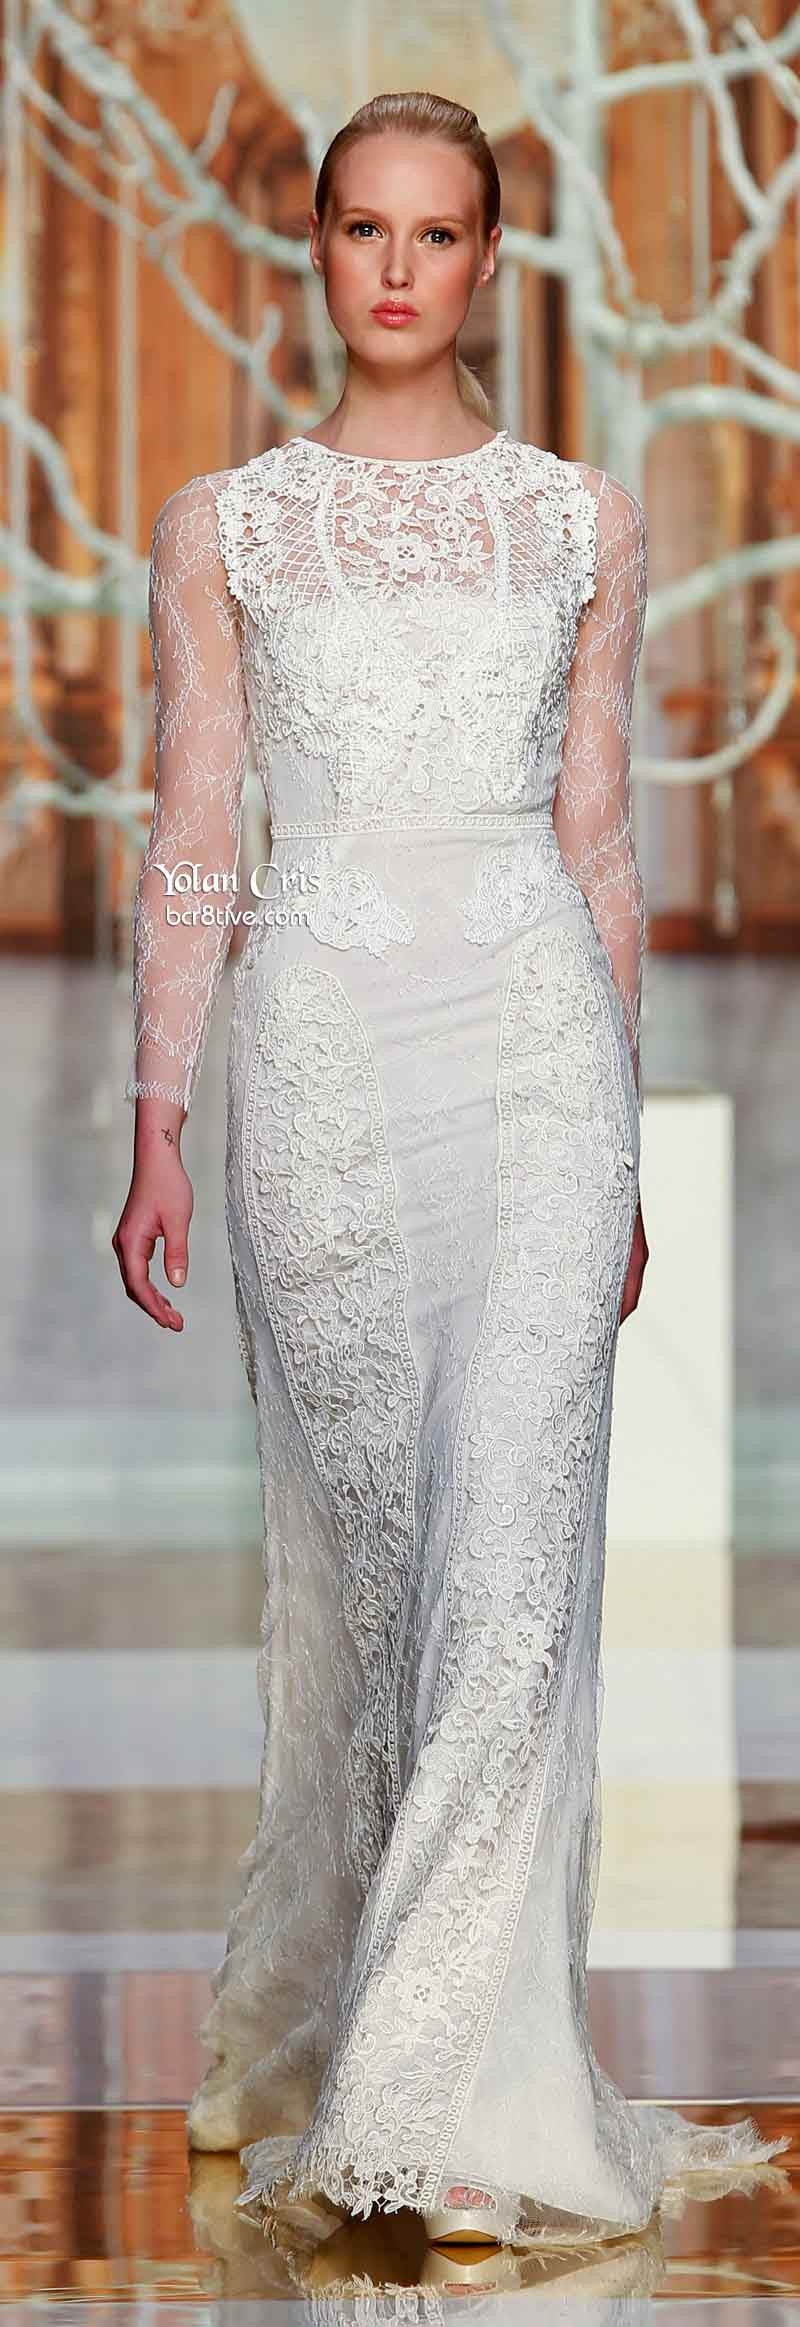 YolanCris Ethereal Evanescence Spring 2014 Bridal